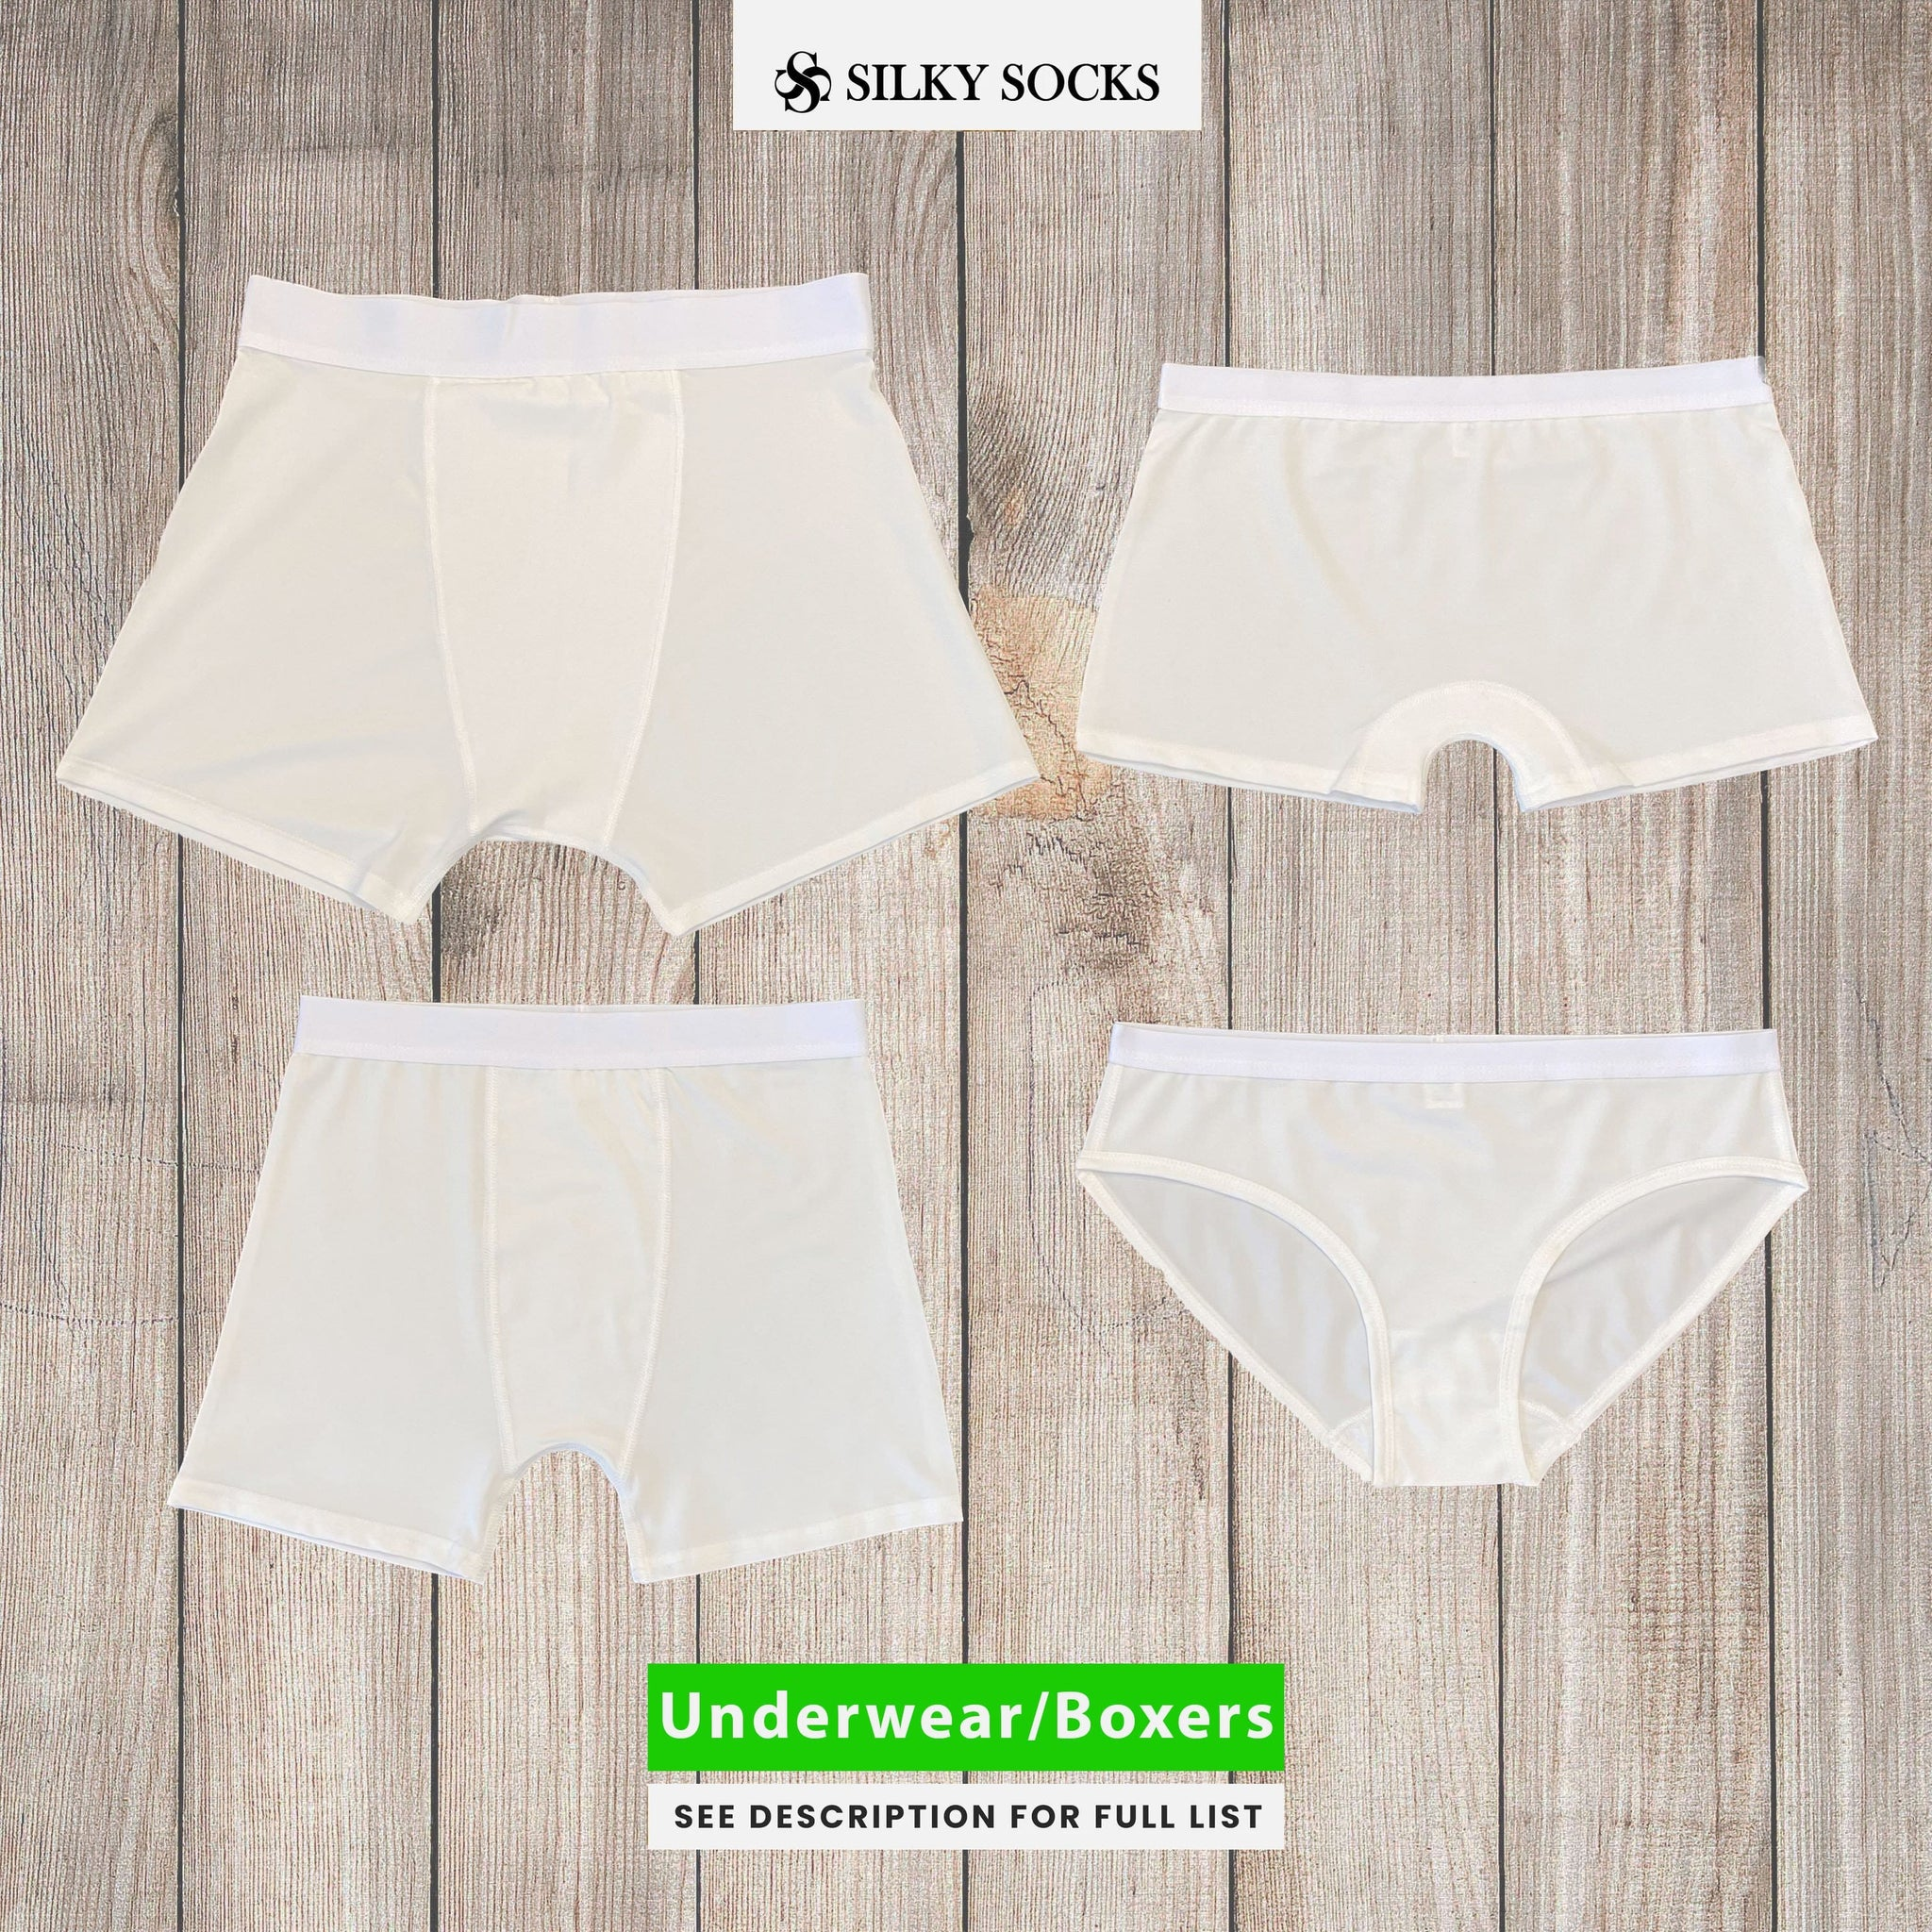 Sample Pack of Underwear/Boxers